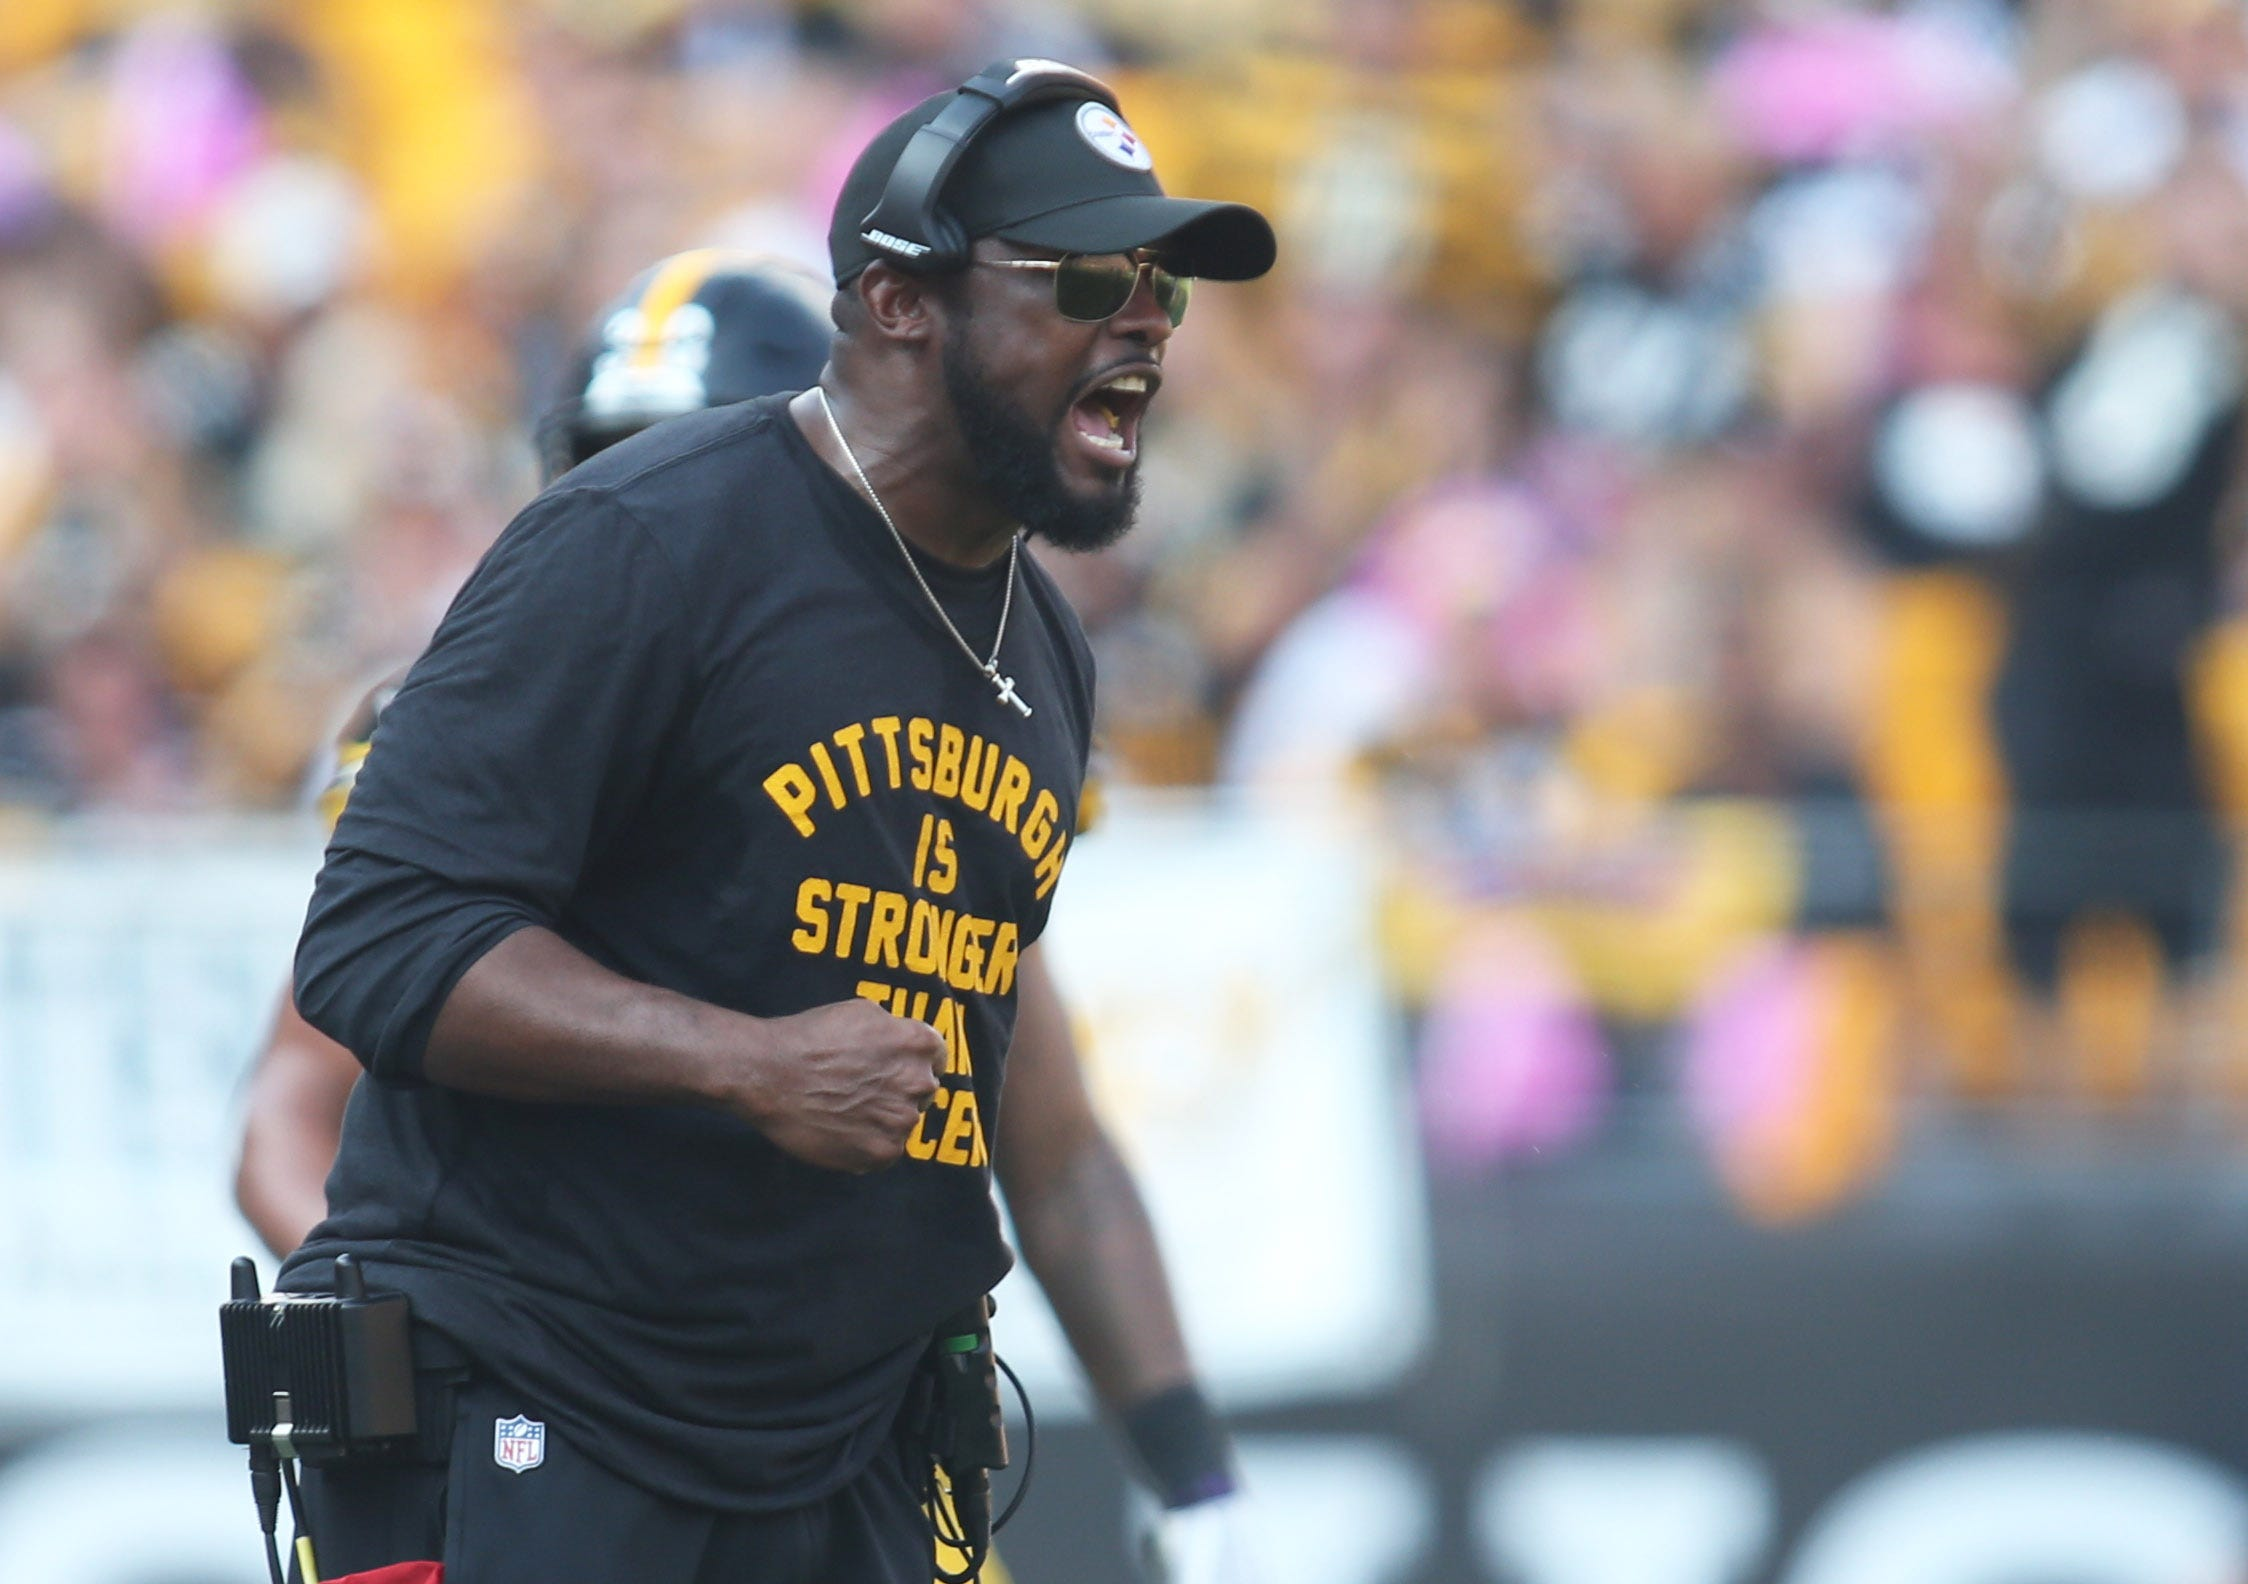 Pittsburgh Steelers Coach Mike Tomlin Some Nfl Penalties